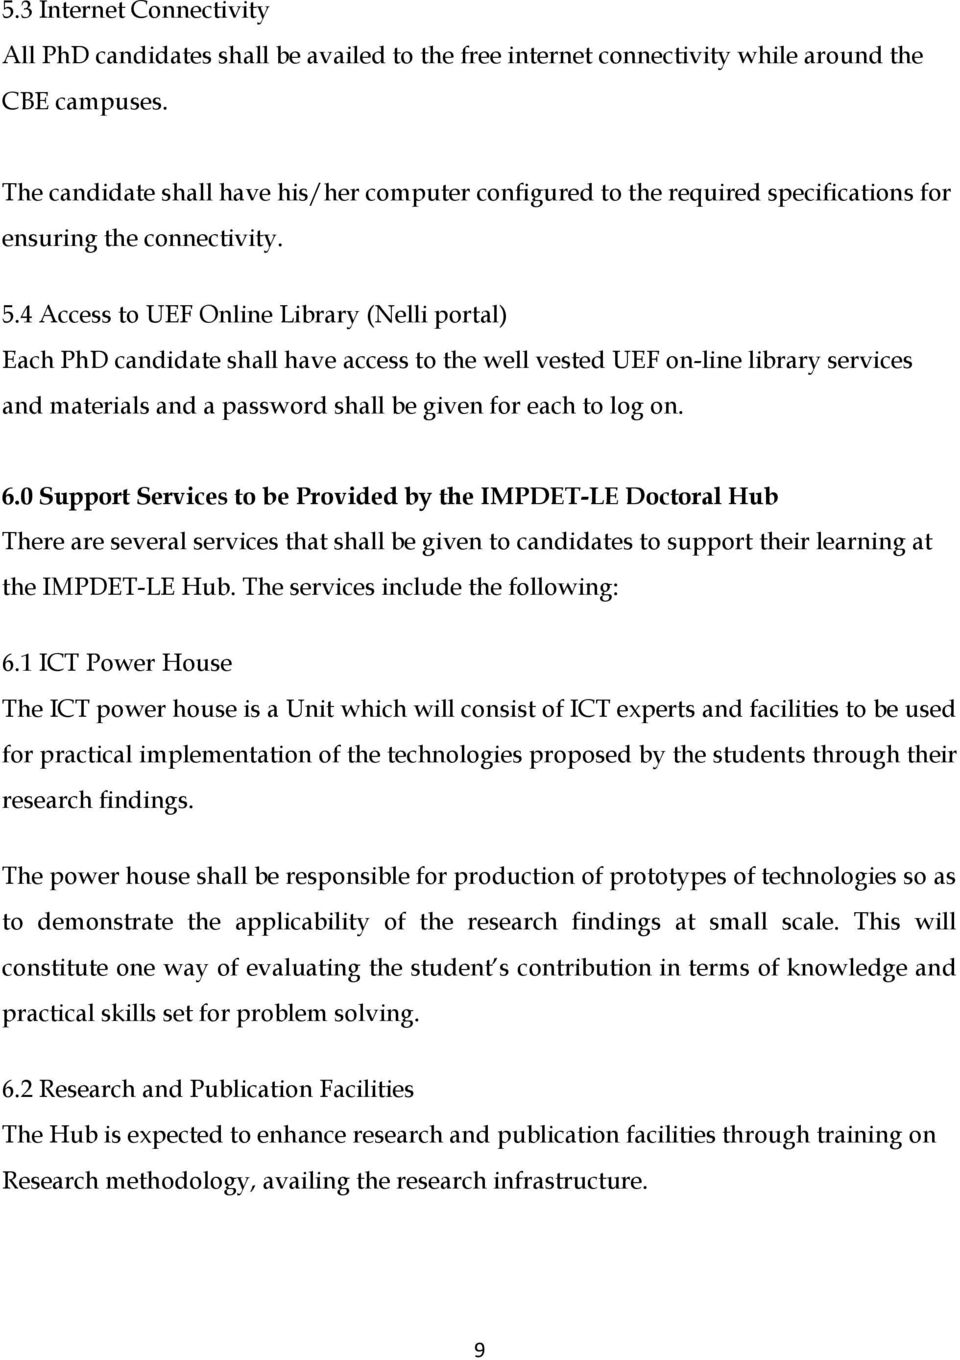 4 Access to UEF Online Library (Nelli portal) Each PhD candidate shall have access to the well vested UEF on-line library services and materials and a password shall be given for each to log on. 6.